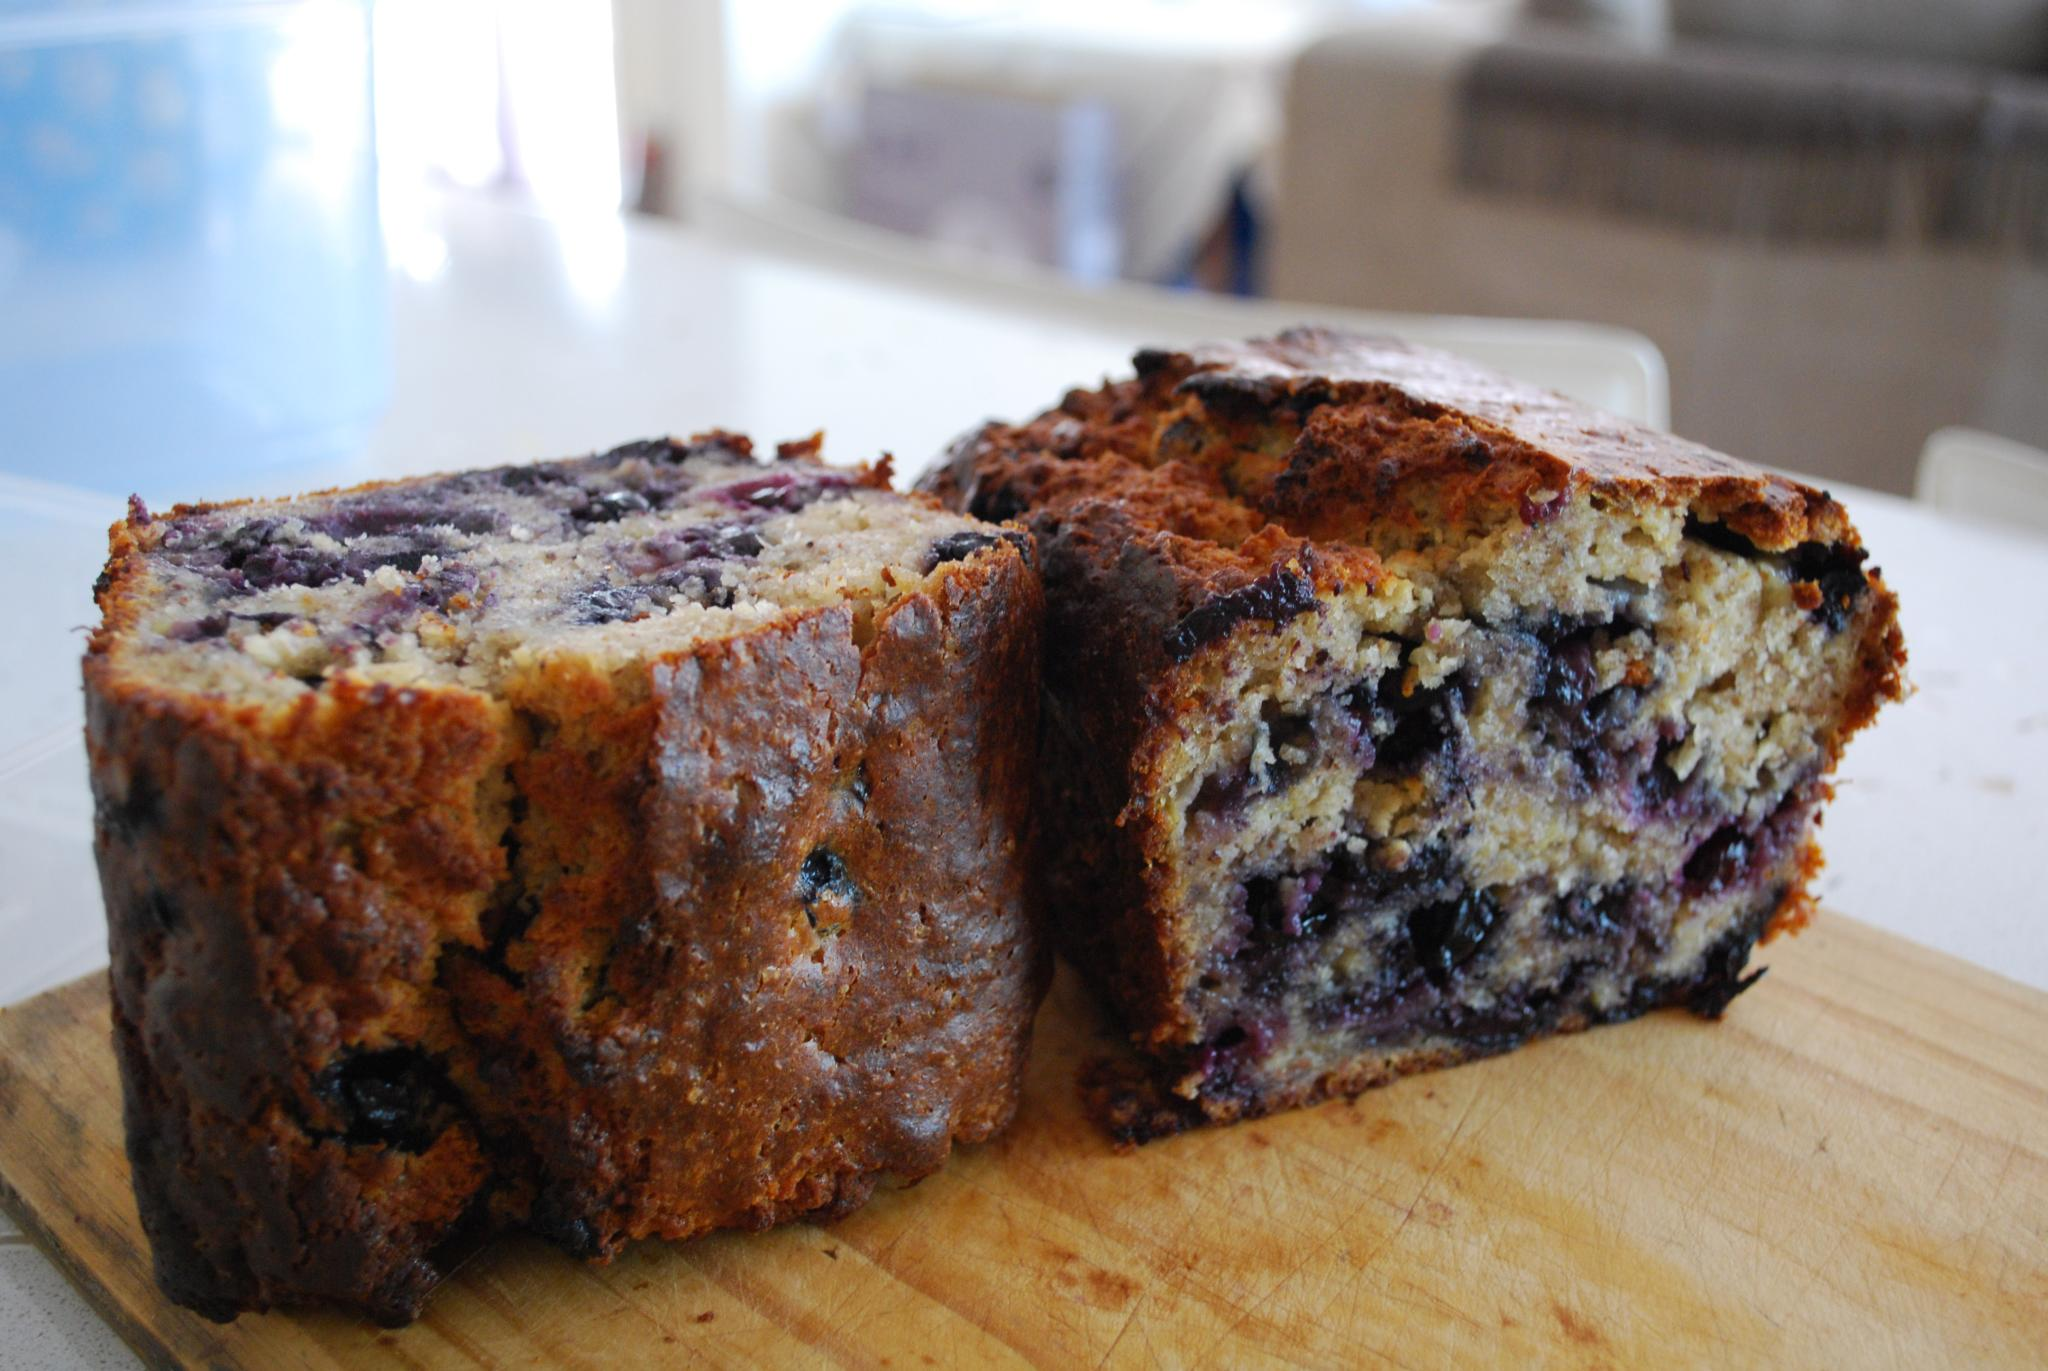 File Julia S Banana And Blueberry Cake With Walnuts Jpg